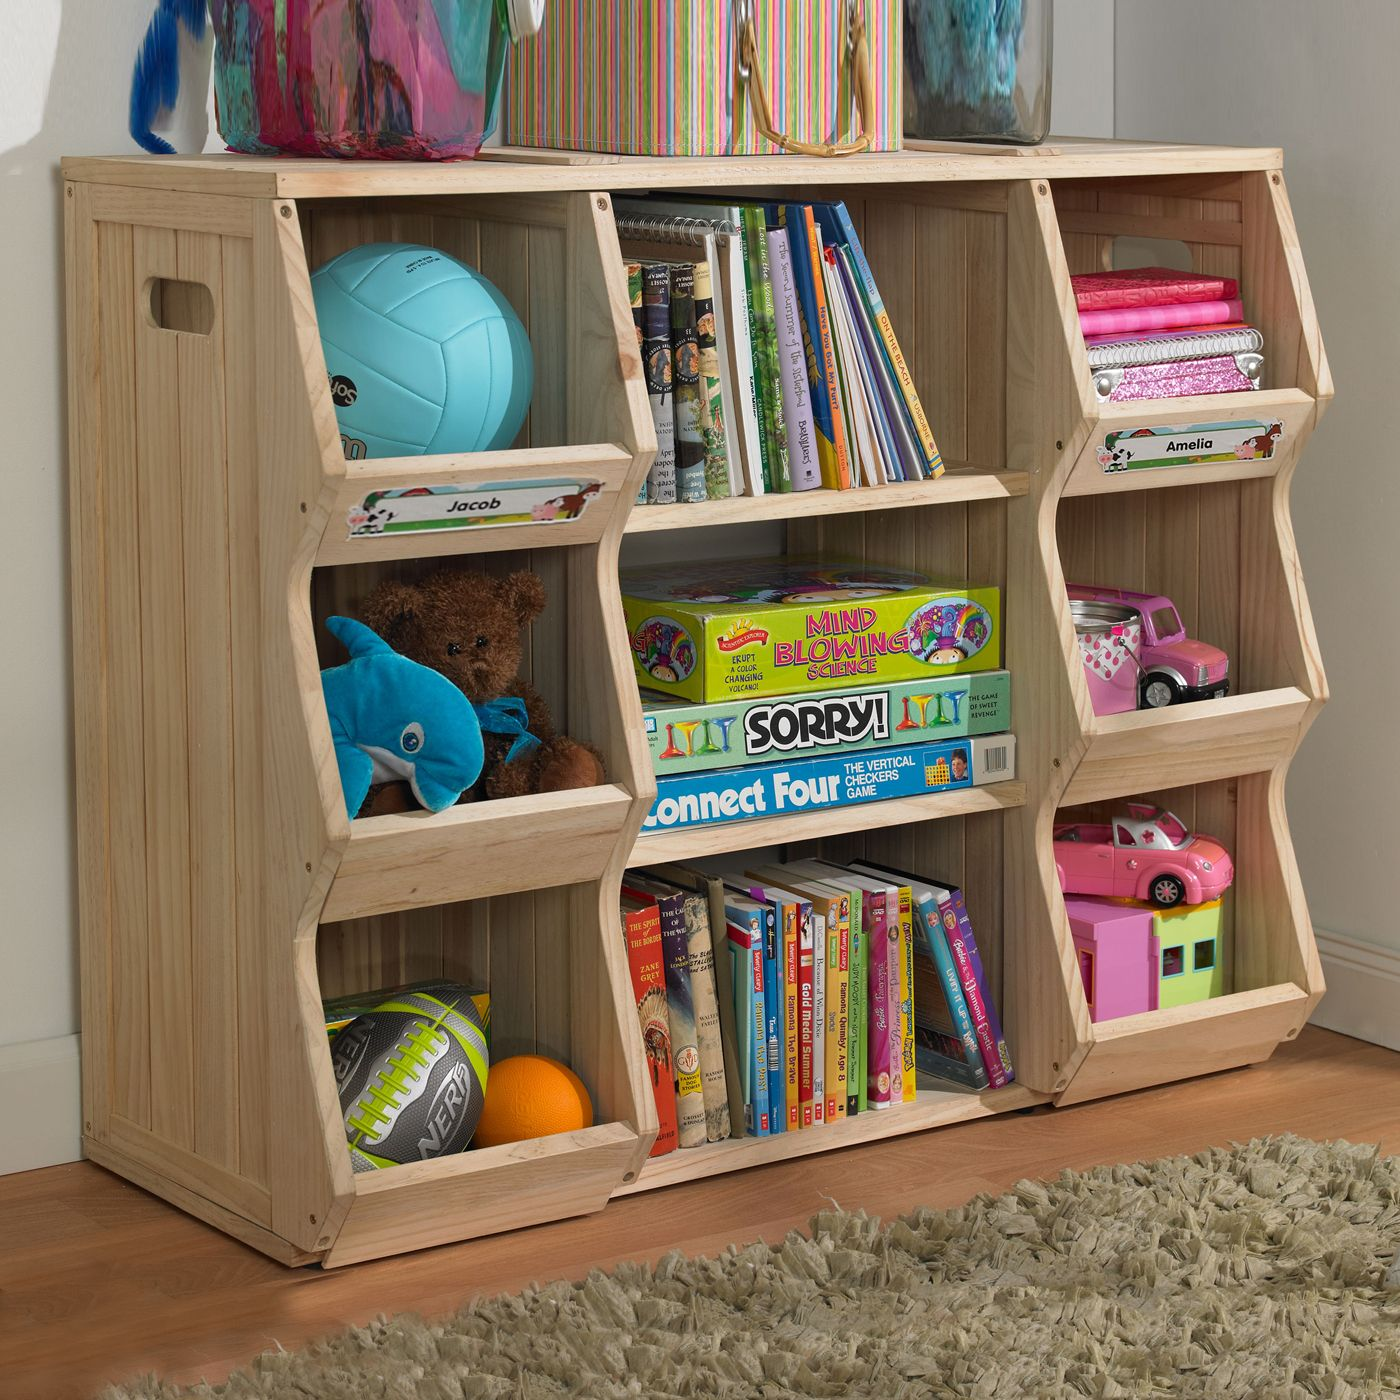 Bedroom Interior Room Design Brown Small Kid With Storage Excerpt Ideas: Merry Products SLF0031901910 Children's Bookshelf Cubby